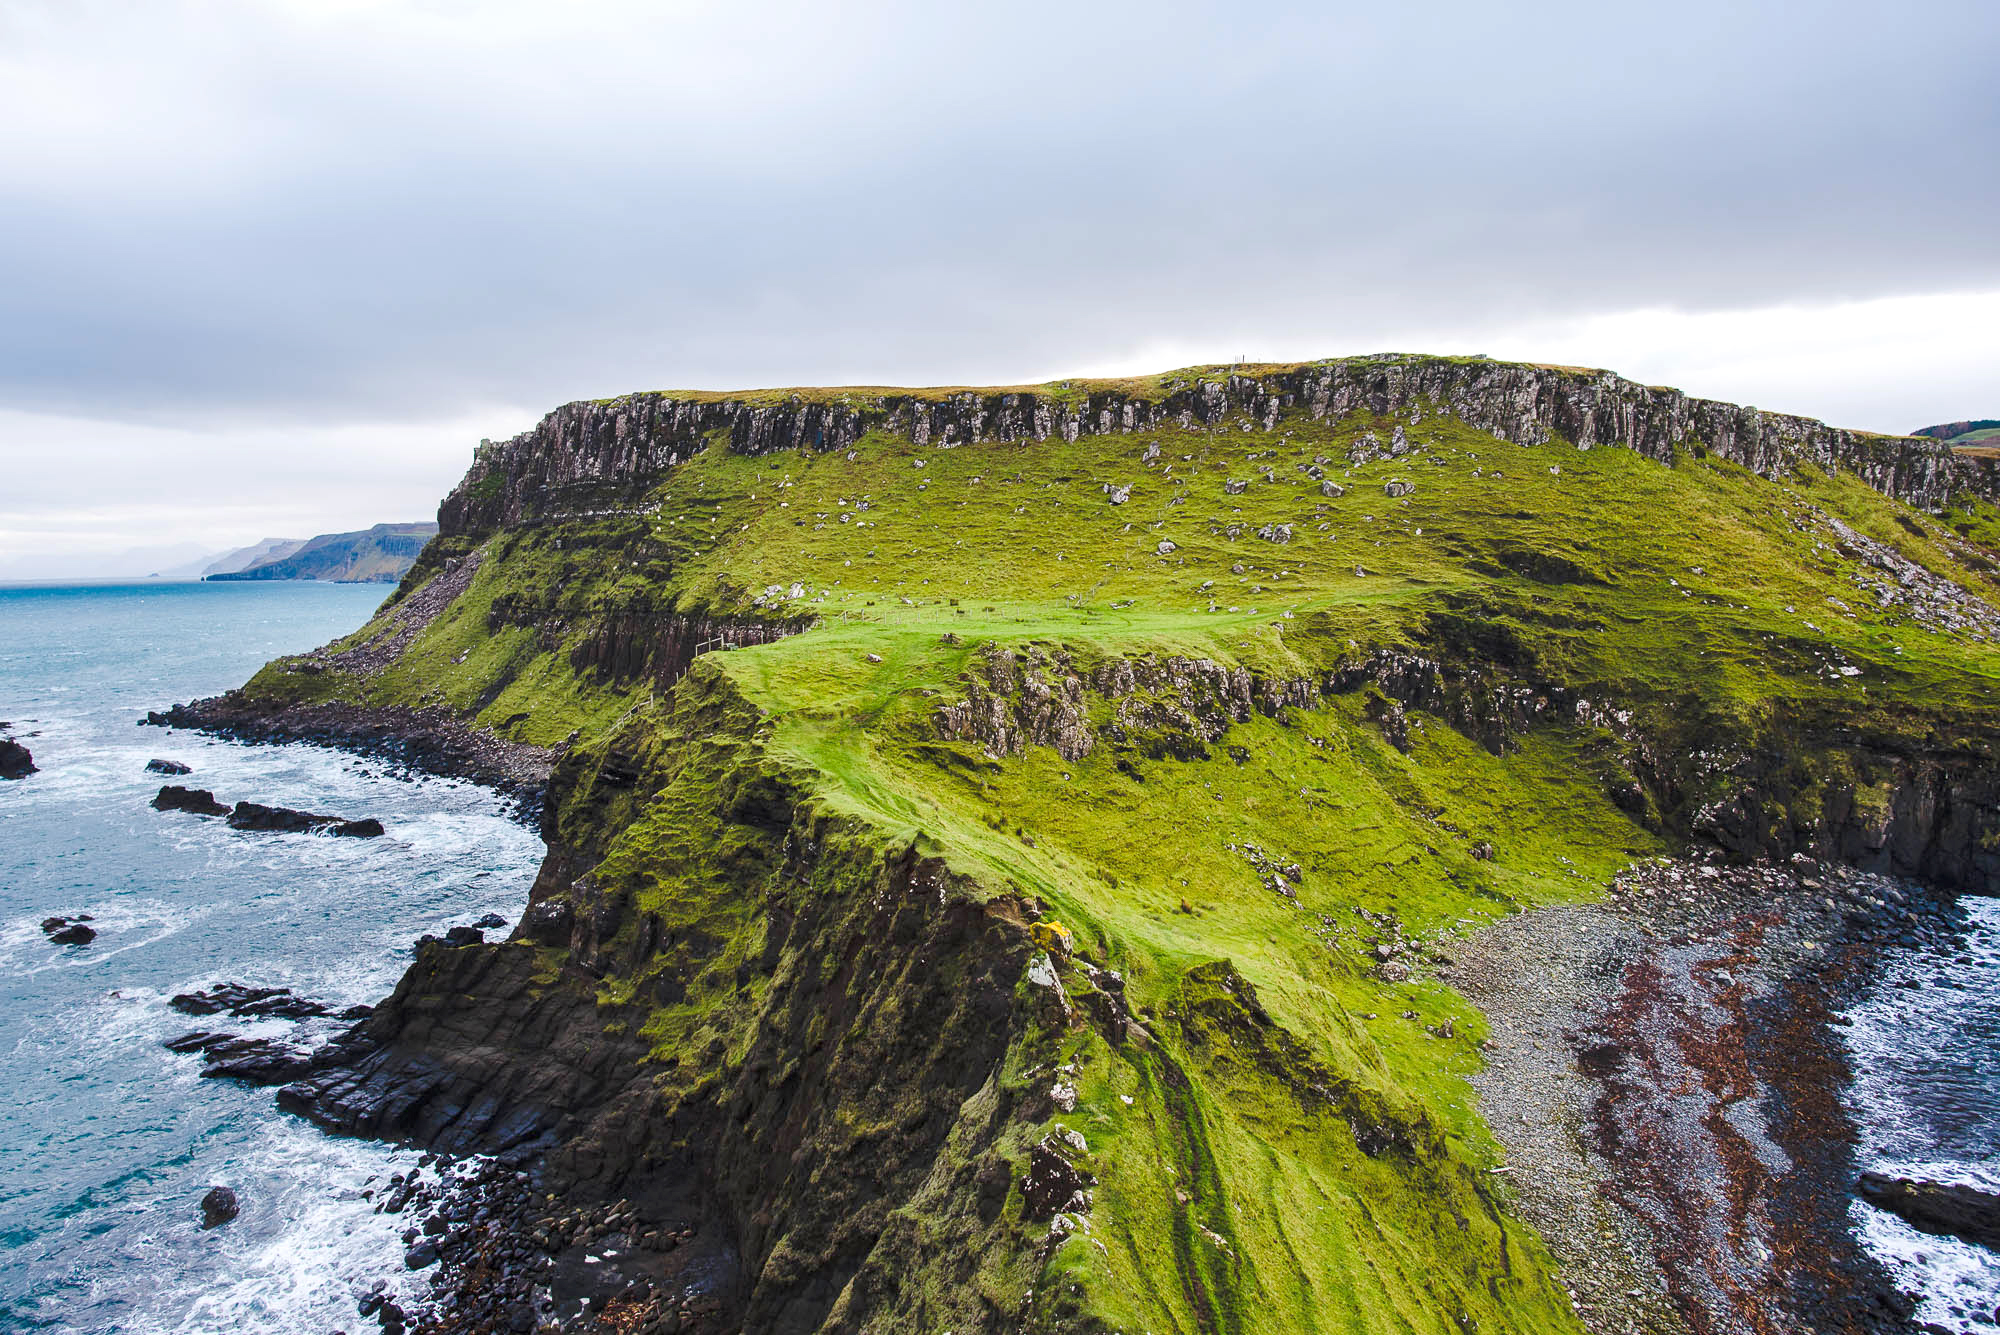 Brothers-Point-Isle-of-Skye-6519 lilymtang.jpg